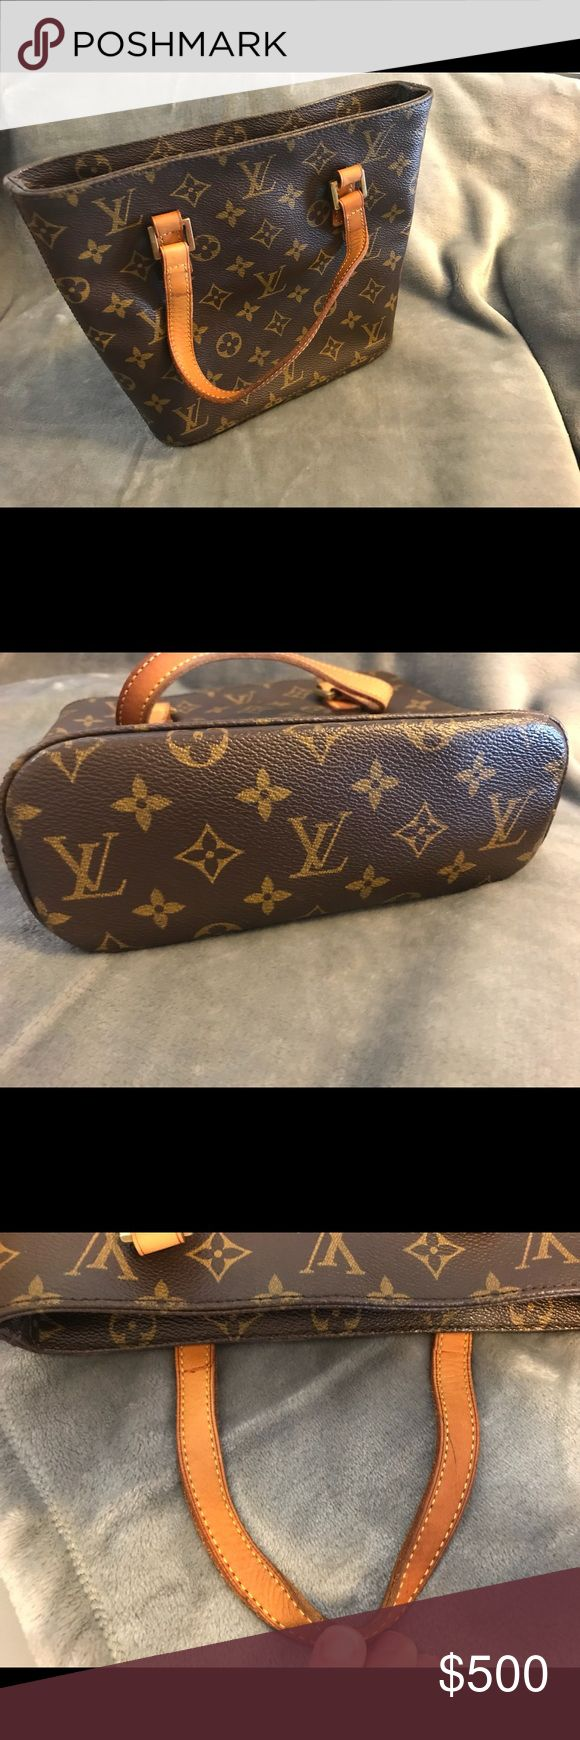 Louis Vuitton small handbag Monogram LV Vavin purse. 8 inches deep. Was purchased in 2003, used for a short period of time and has been in a closet. One owner. Louis Vuitton Bags